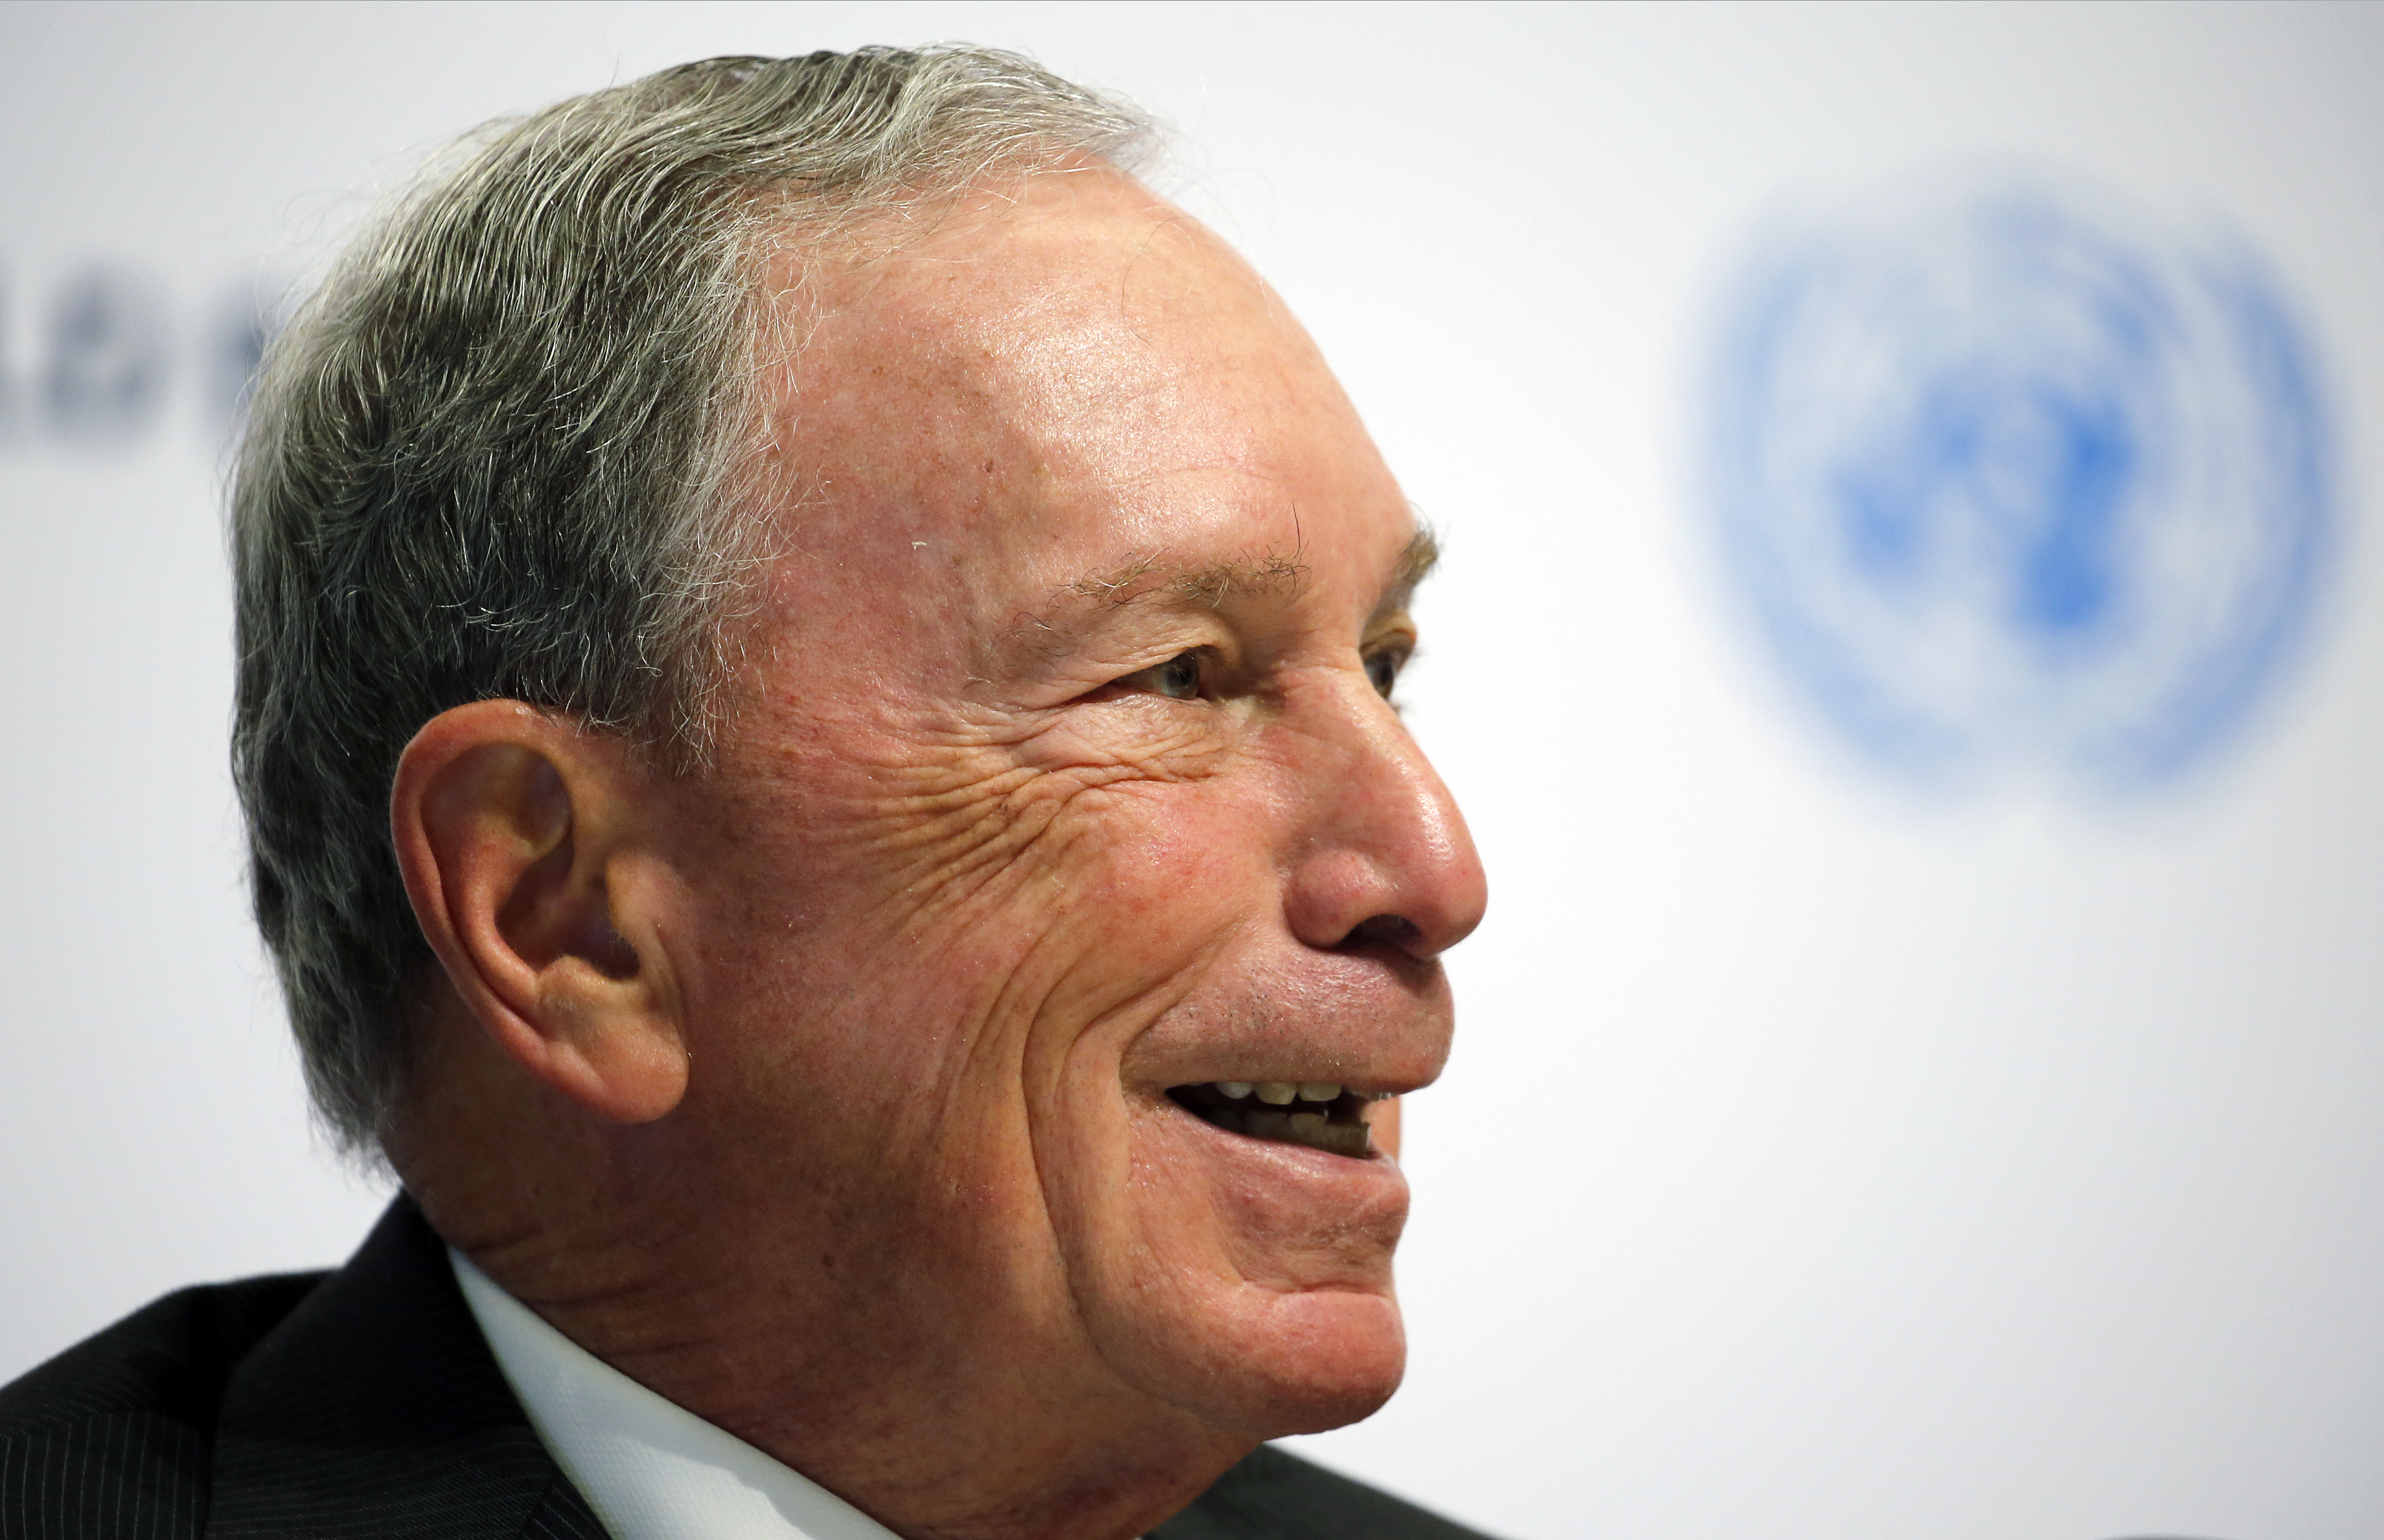 Special envoy to the United Nations for climate change Michael Bloomberg attends a press conference during the One Planet Summit at the Seine Musicale on the Ile Sequin on Dec. 12 in Boulogne-Billancourt, France